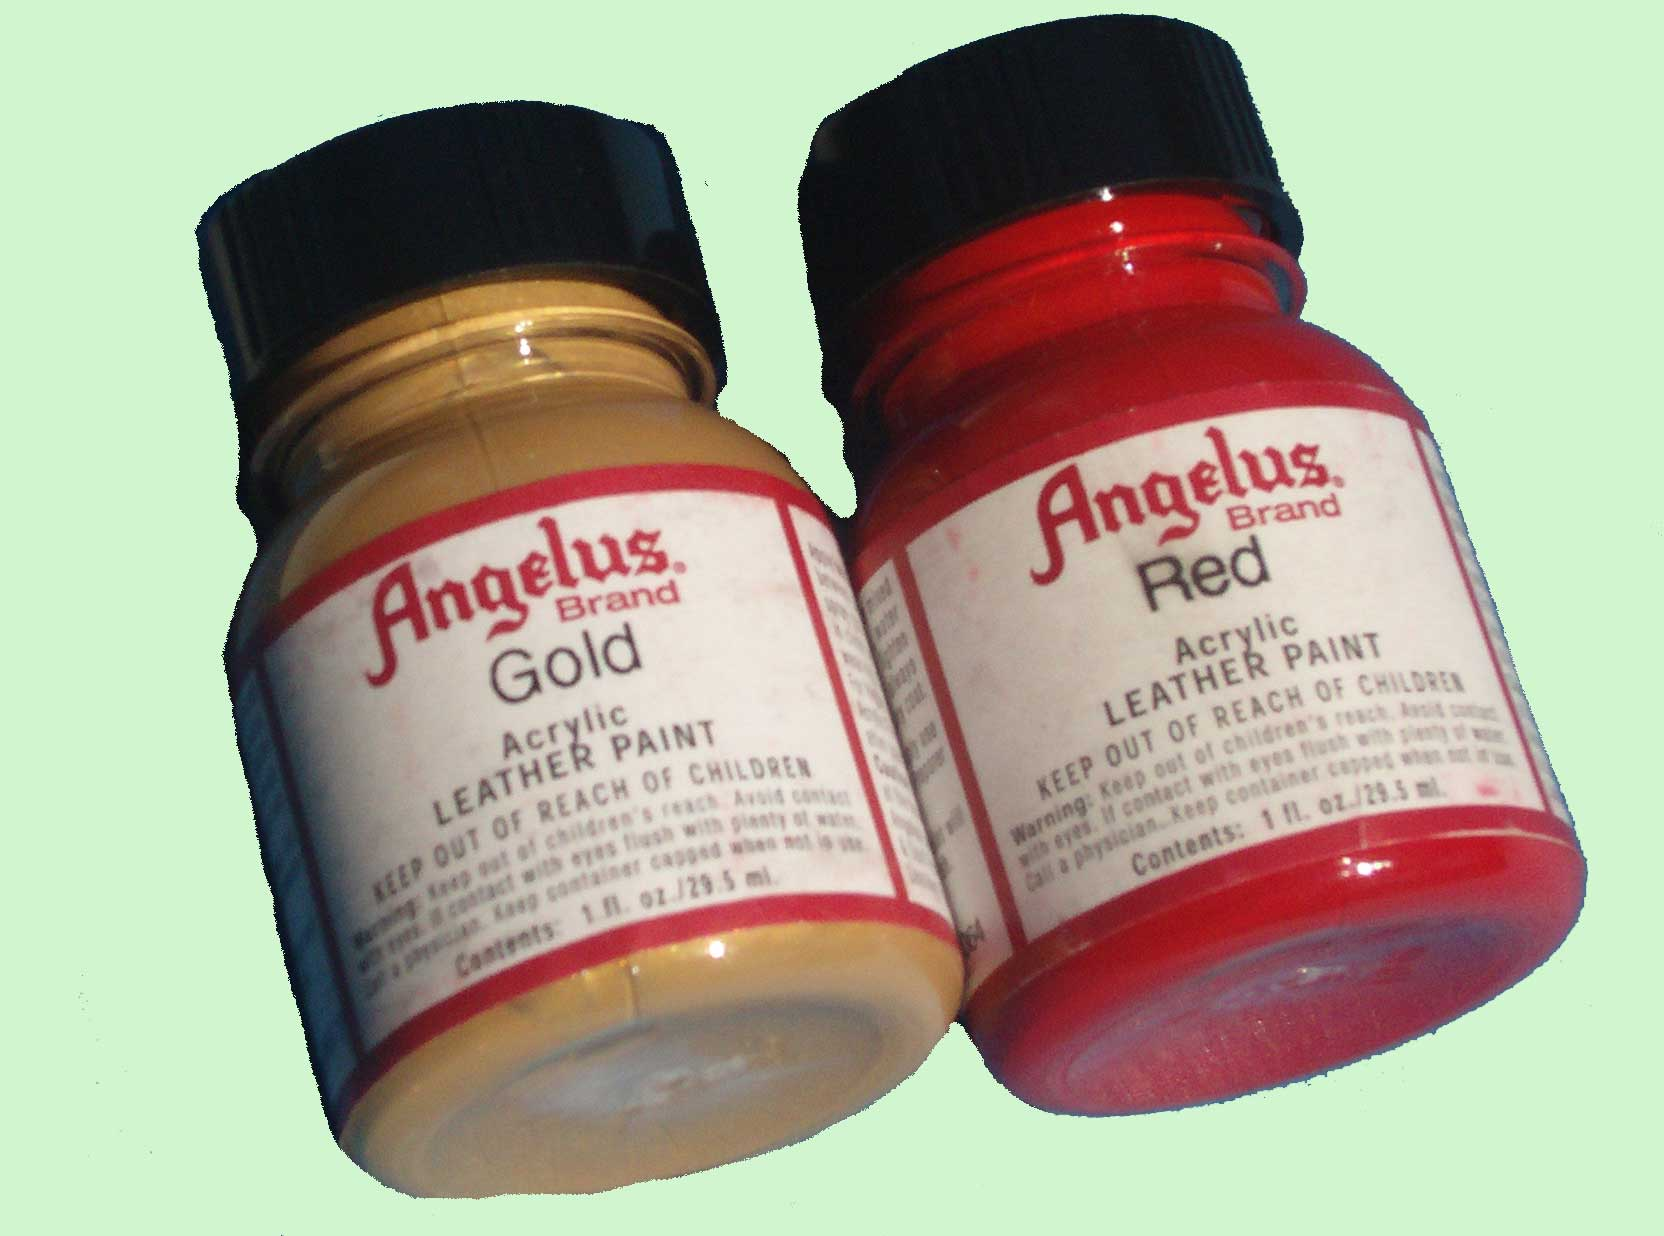 leather paint Angelus leather dye Angelus liner Angelus Duller Angelus Sole Bright Angelus Instant Clean Angelus Blue Foam Angelus Easy Cleaner Angelus Flat top finisher Angelus 2-thin Angelus Acrylic 600 Finisher Angelus deglazer Angelus edge leather finish Angelus Shoe Polish Burgundy Angelus Shoe Polish Black Angelus Shoe Polish Brown, Angelus Shoe Polish Cordovan Angelus Shoe Polish Mahogany Angelus Shoe Polish Neutral Angelus Shoe Polish Tan Angelus Matte Finisher Glow in the Dark Green Angelus 2 Hard Plastic medium